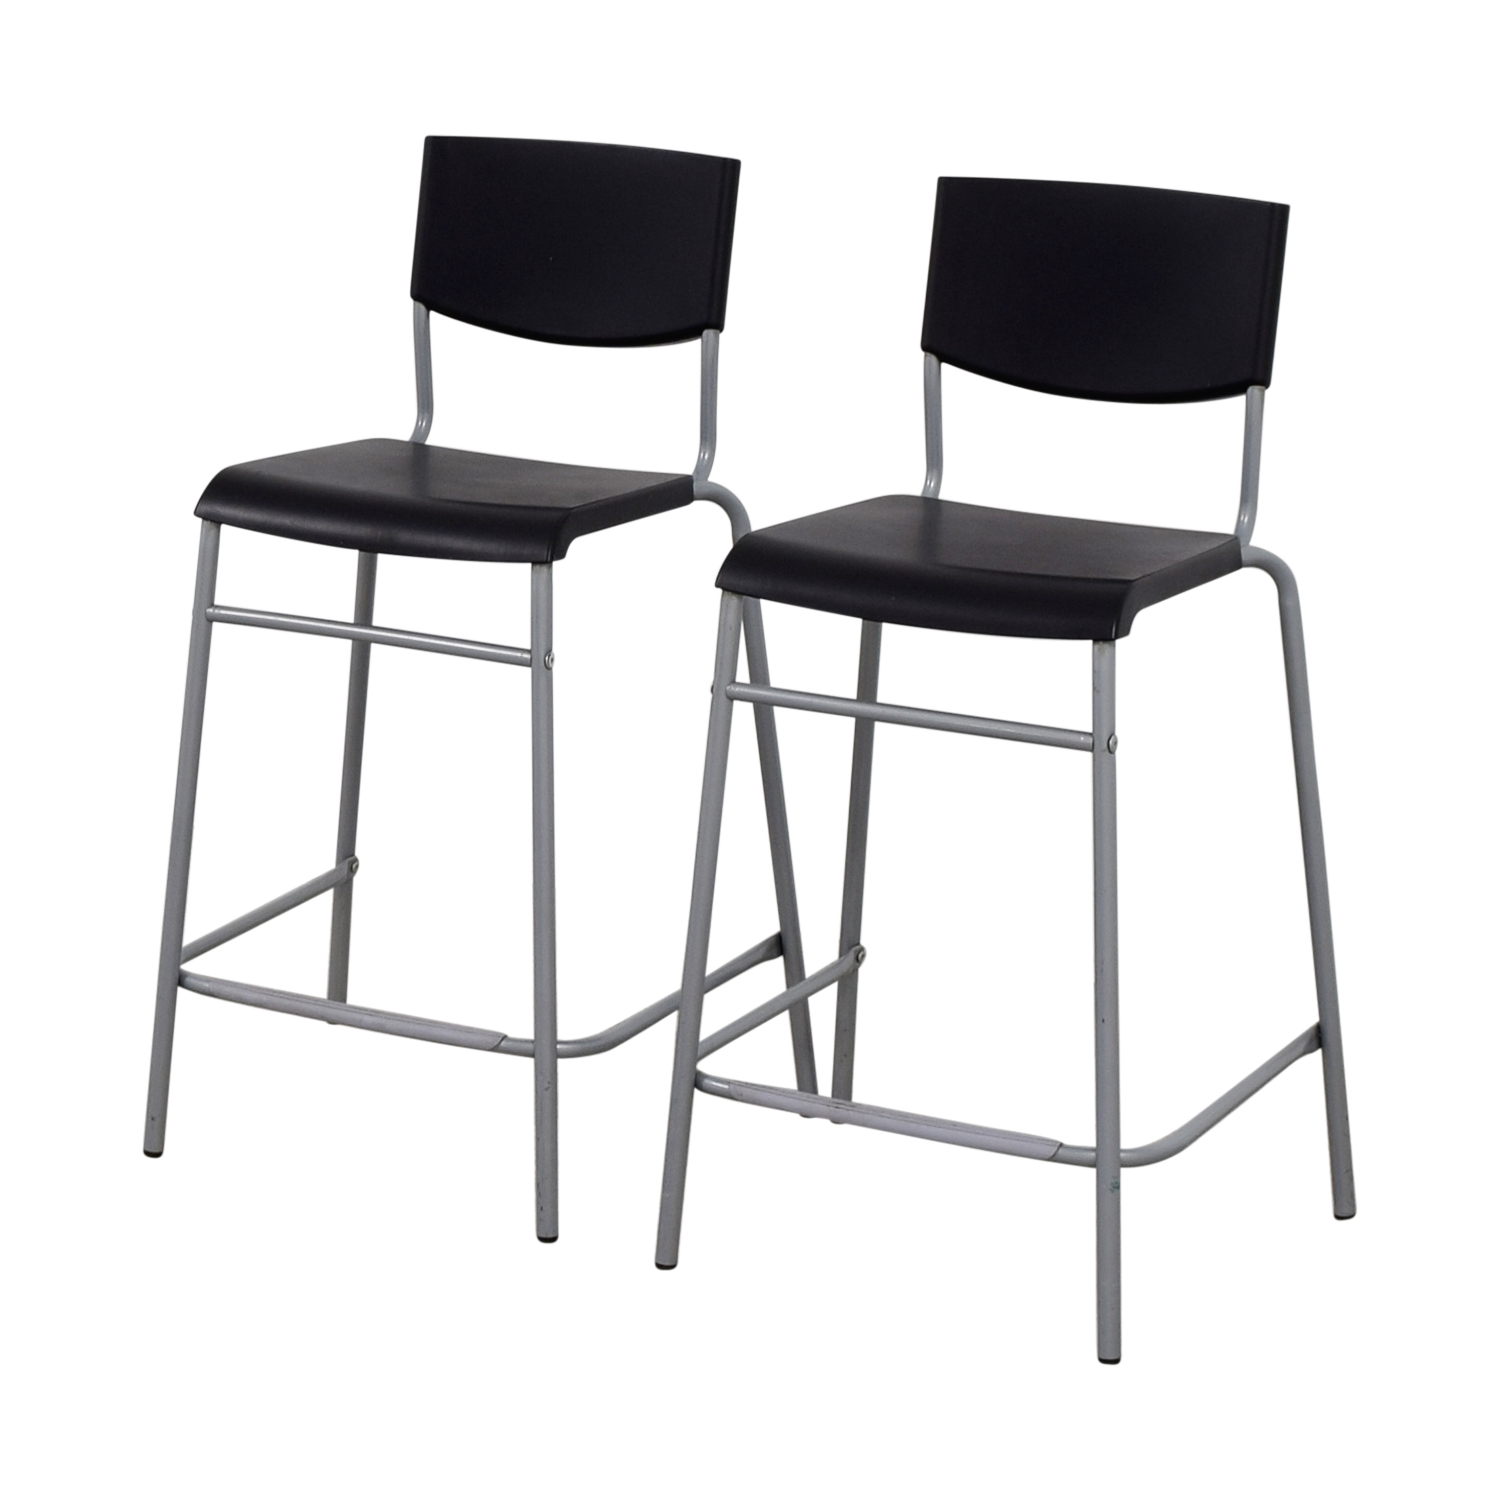 50 off ikea ikea stig black bar stools chairs. Black Bedroom Furniture Sets. Home Design Ideas